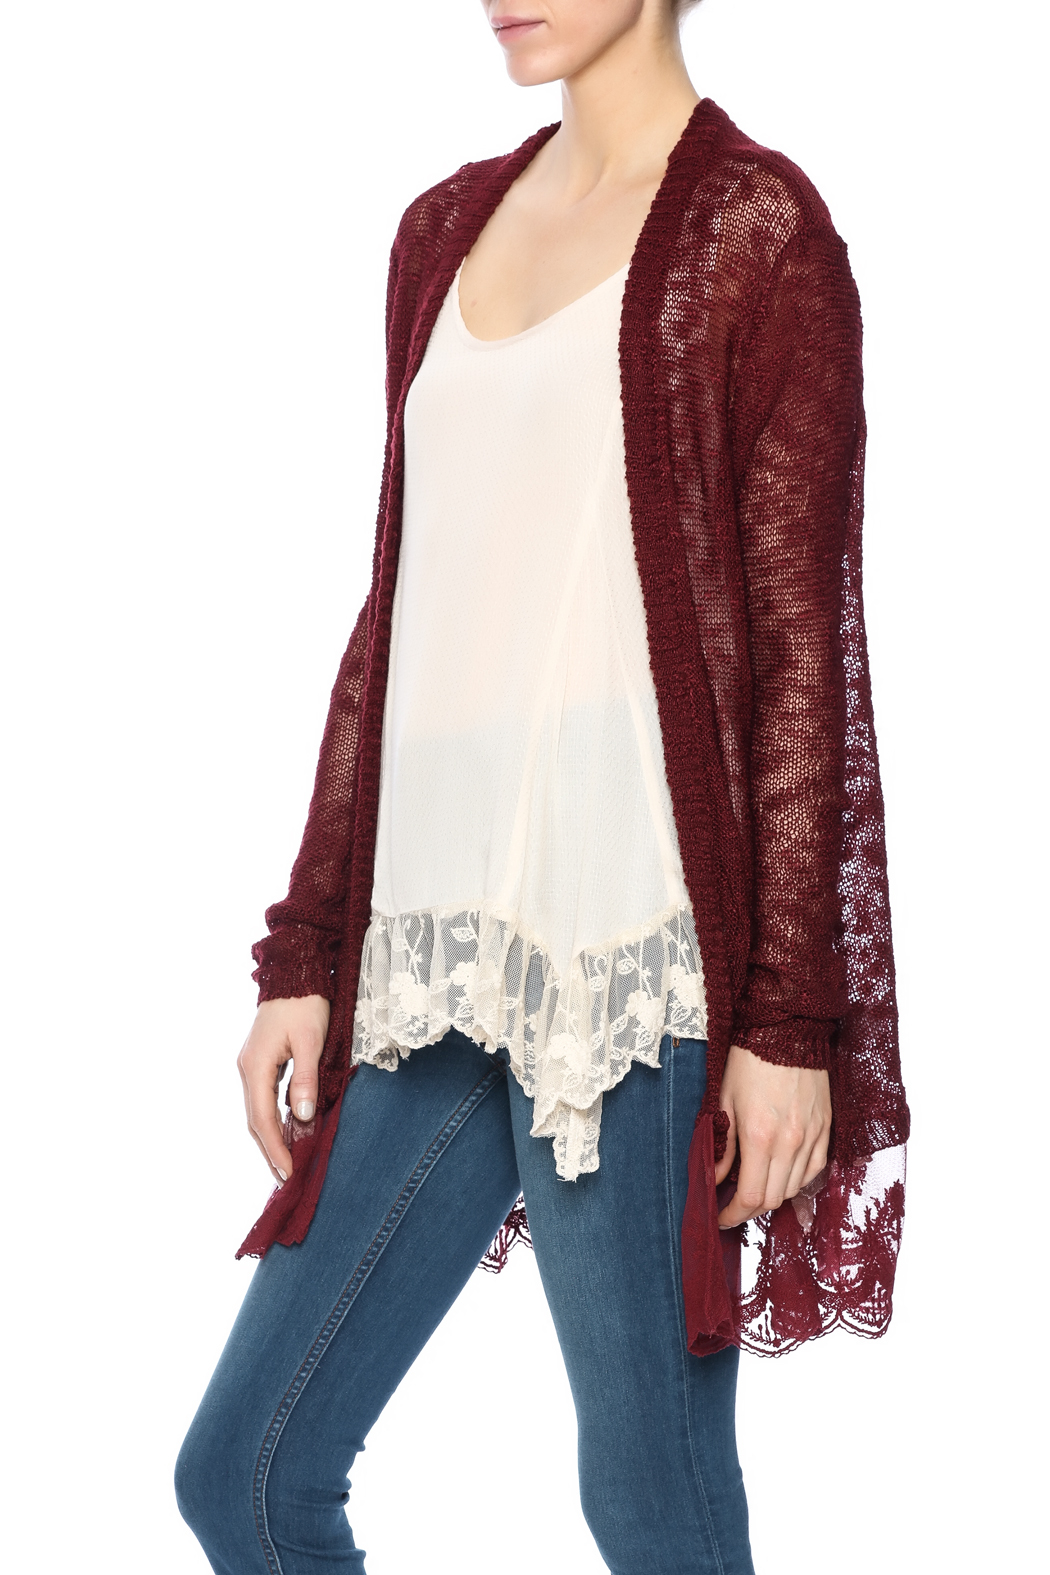 Nadya's Closet Lace Longline Cardigan from California — Shoptiques